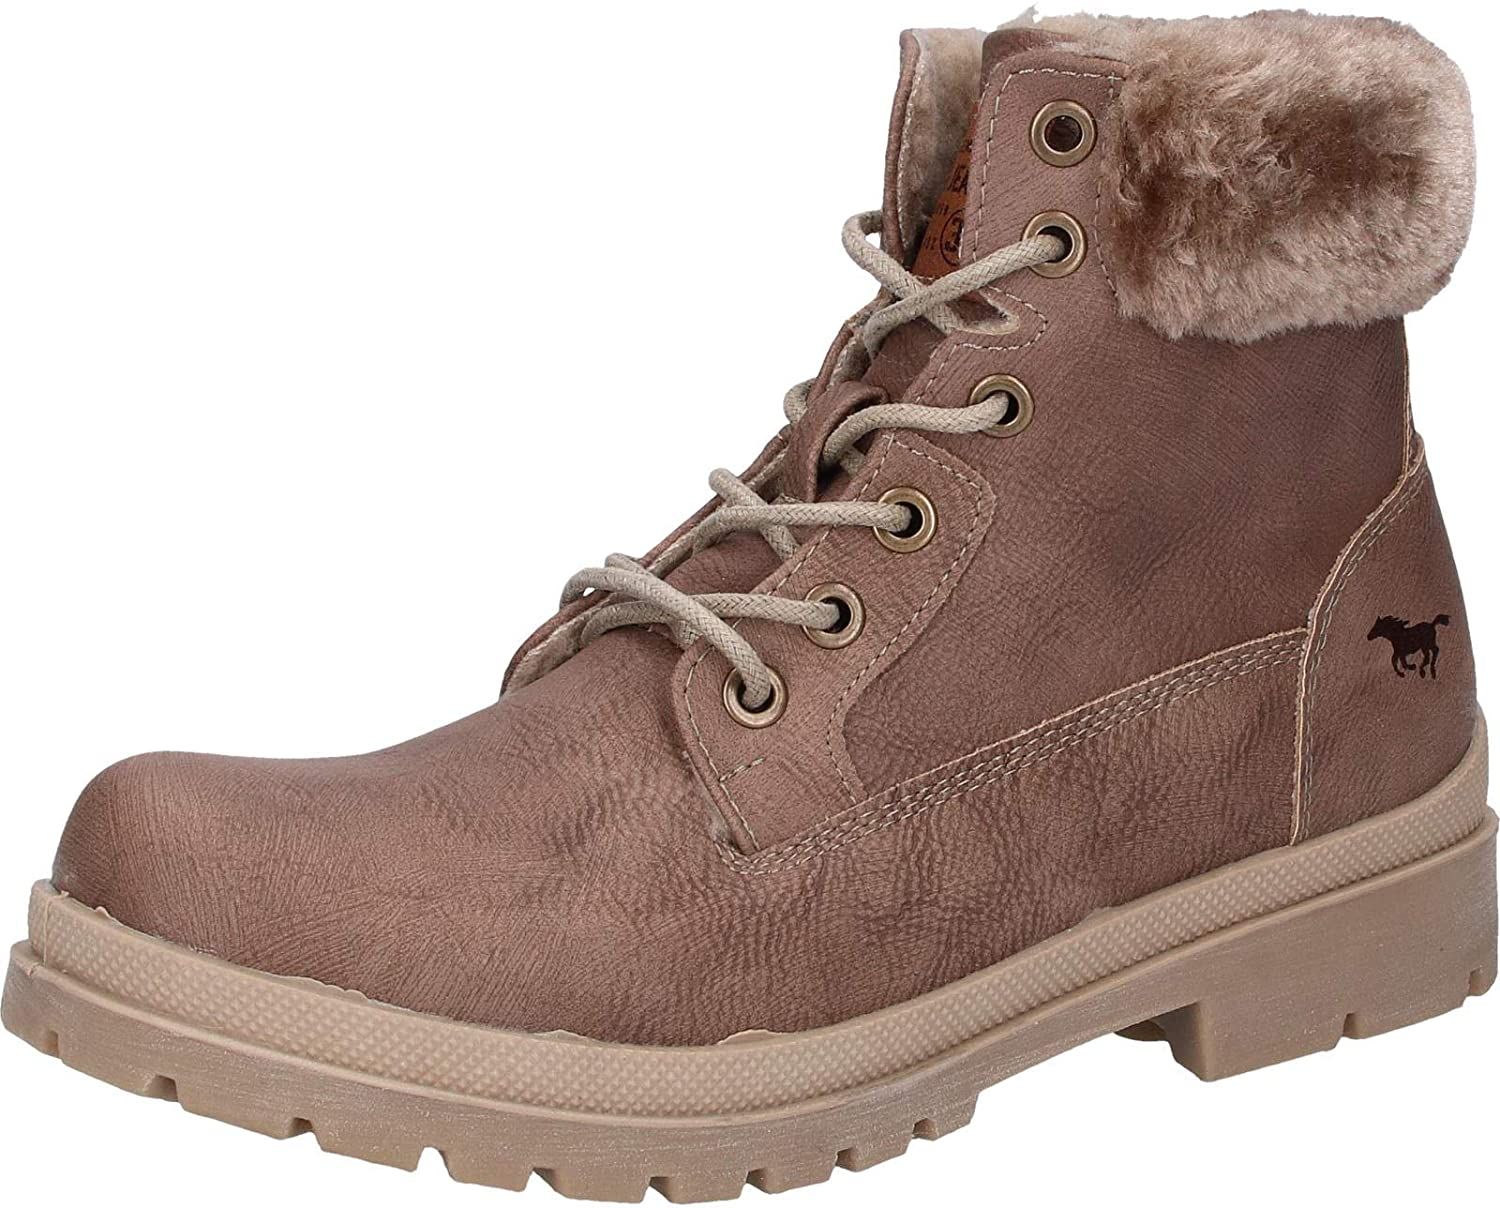 Mustang Femme, 1207-607, Bottes B01LZ95VDX Femme, Gris 1207-607, Marron 1780ed4 - therethere.space